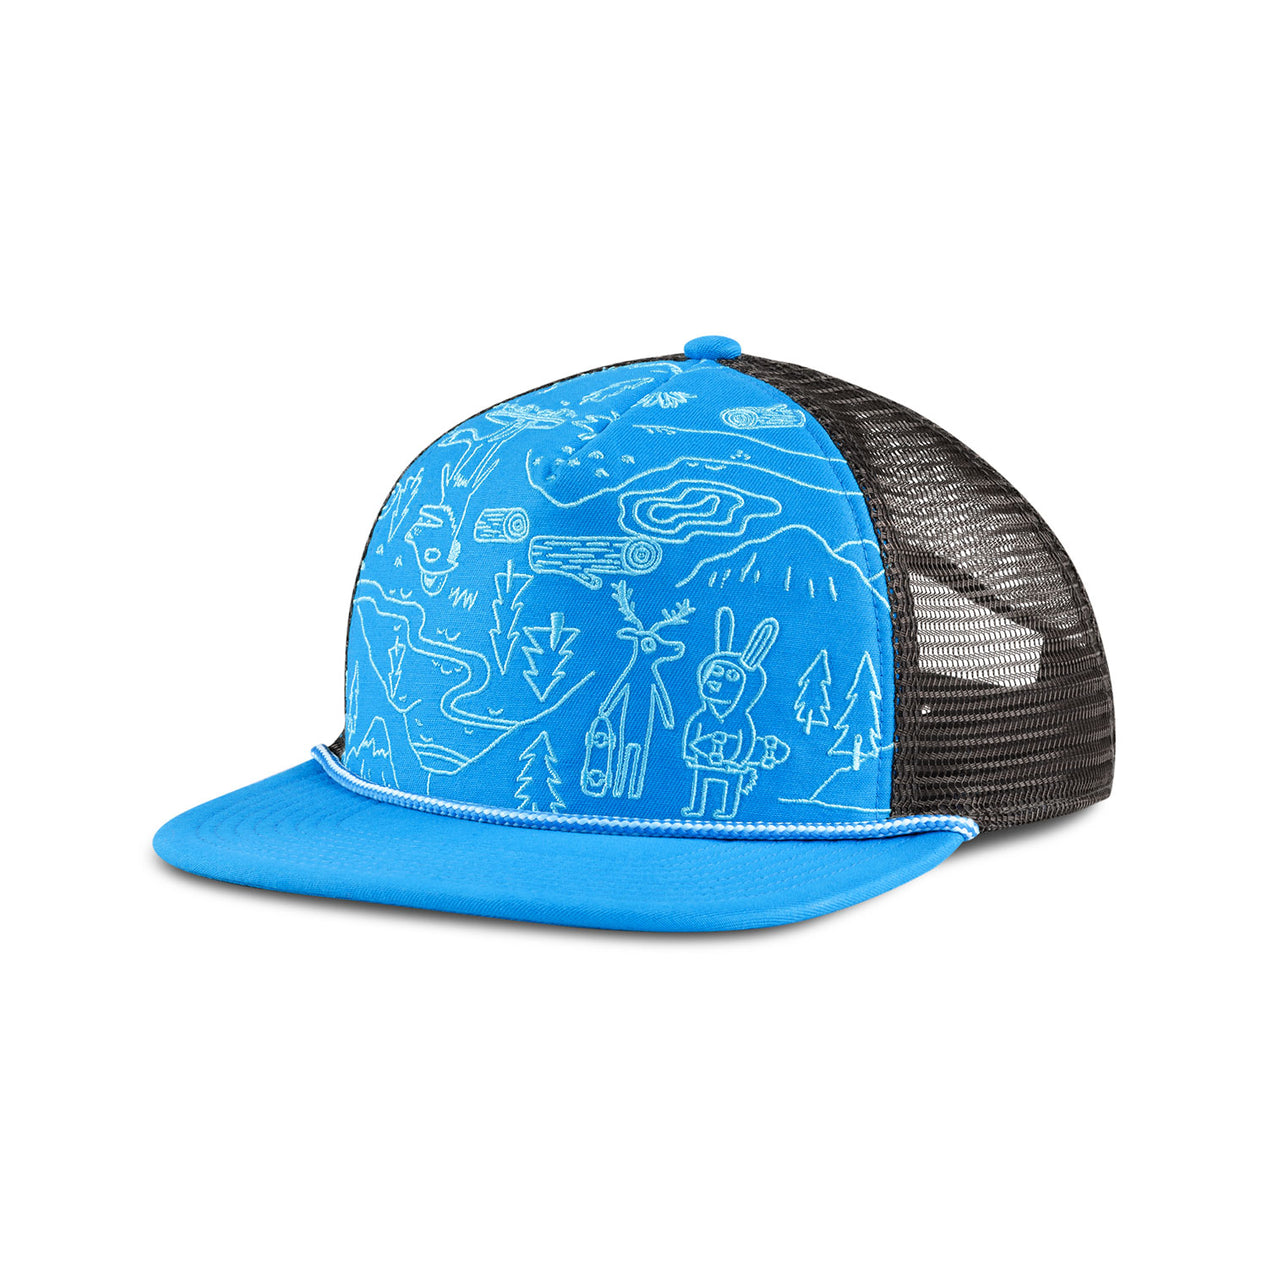 630a3107d62 The North Face Youth Cross Stitch Trucker Hat